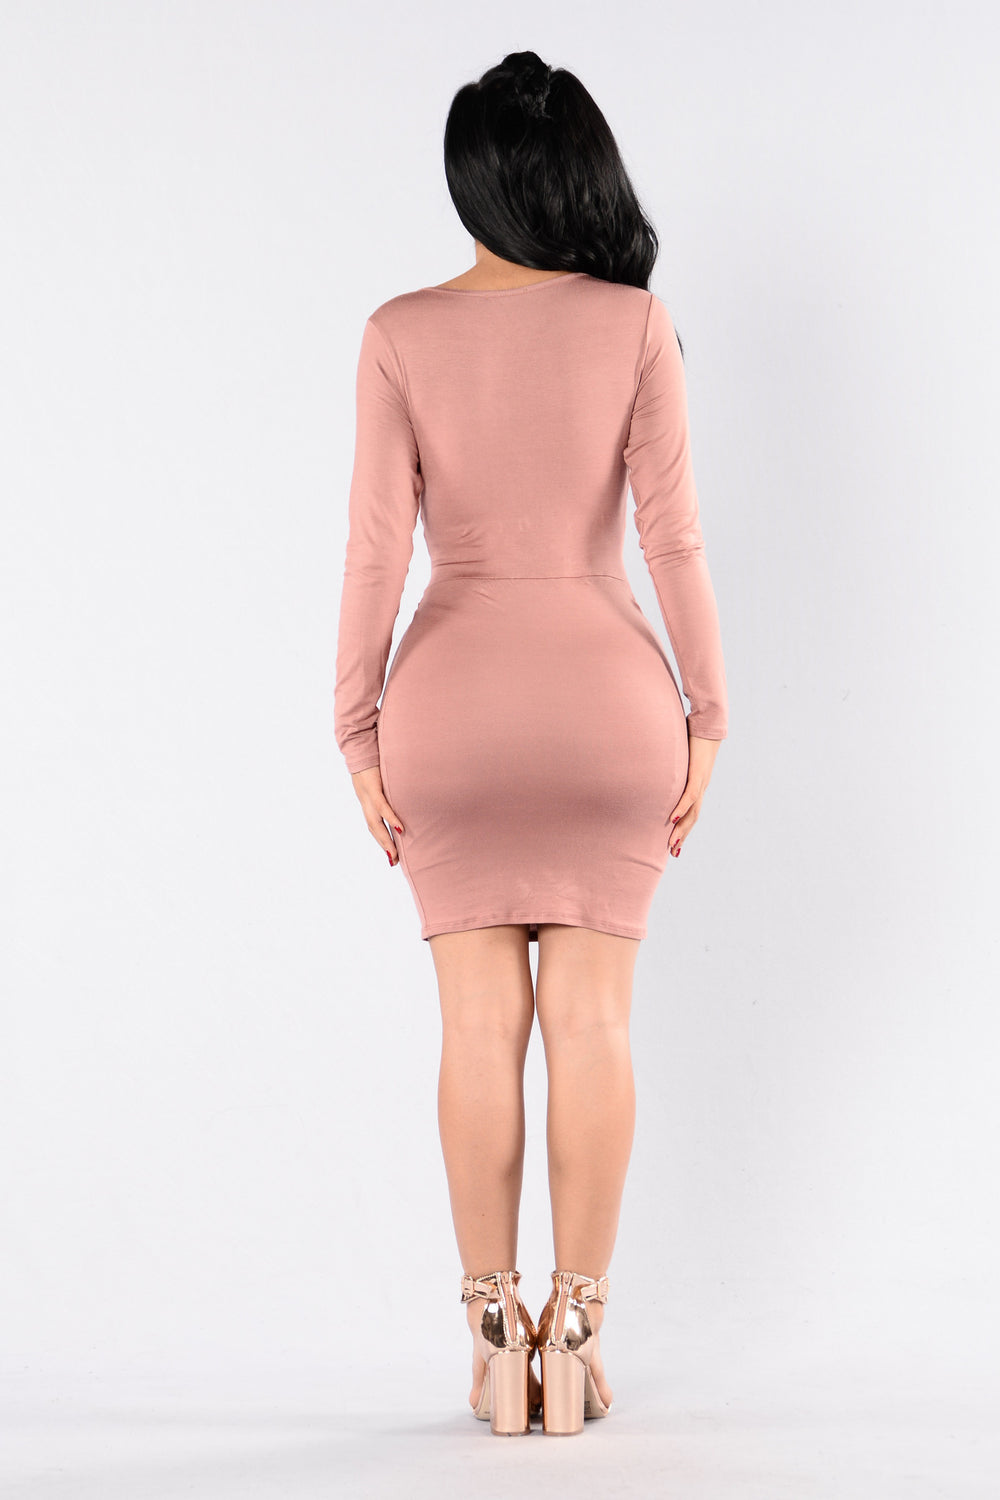 Good Vibrations Dress - Dusty Mauve